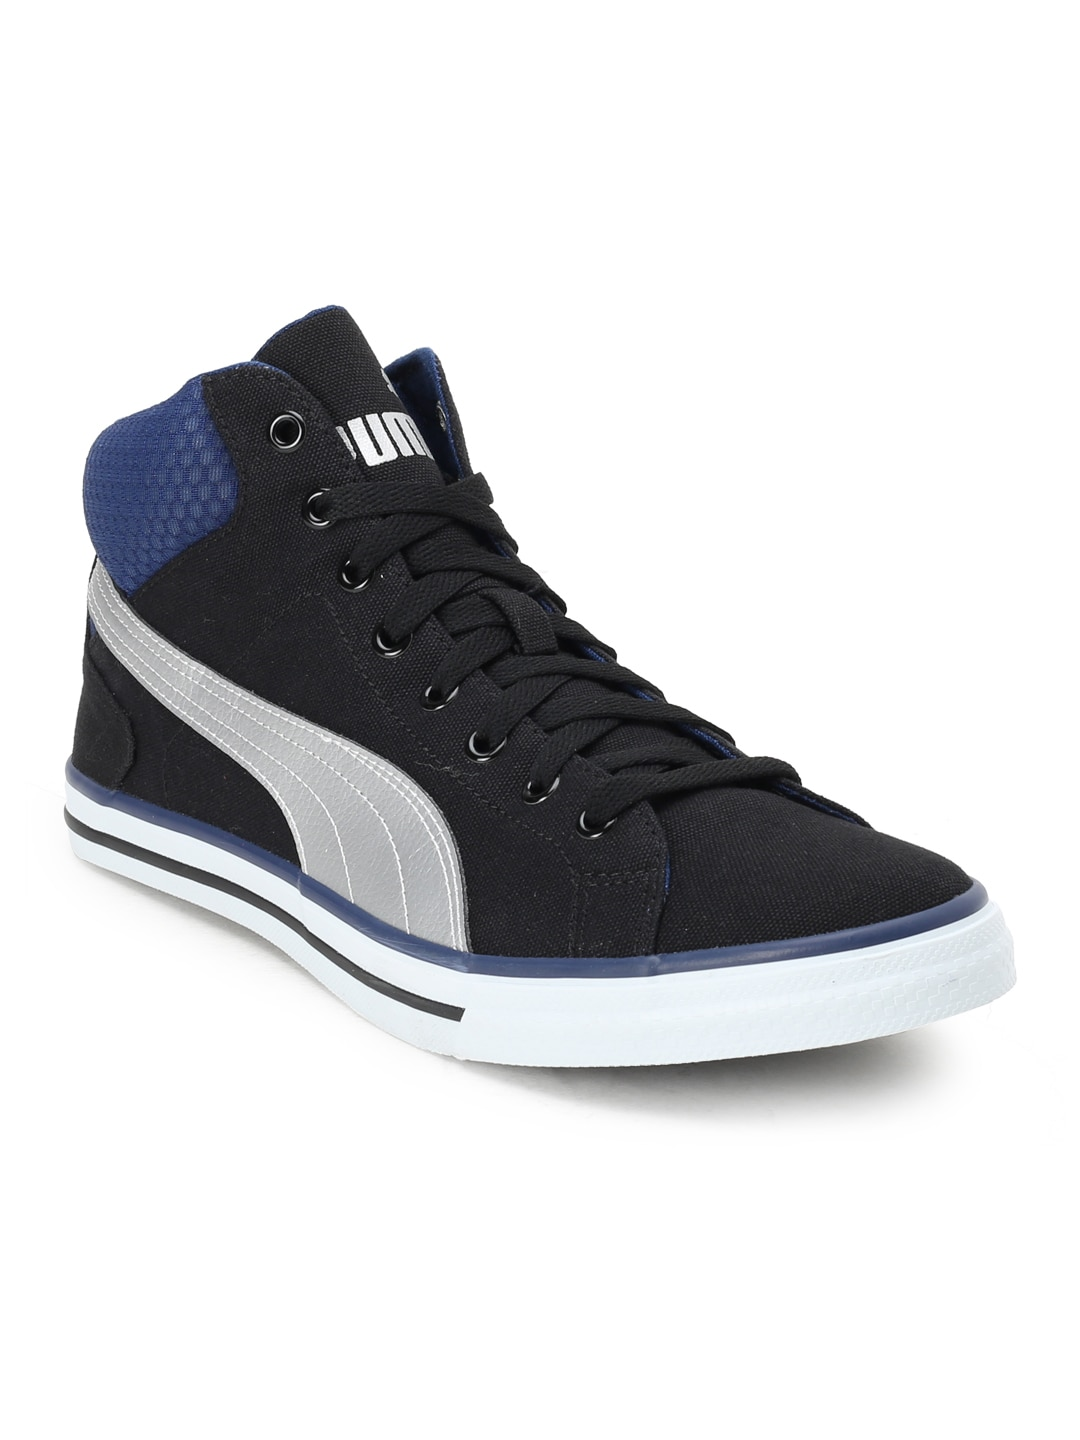 Top In Sneaker Online Buy By Puma India High Yb7fgy6